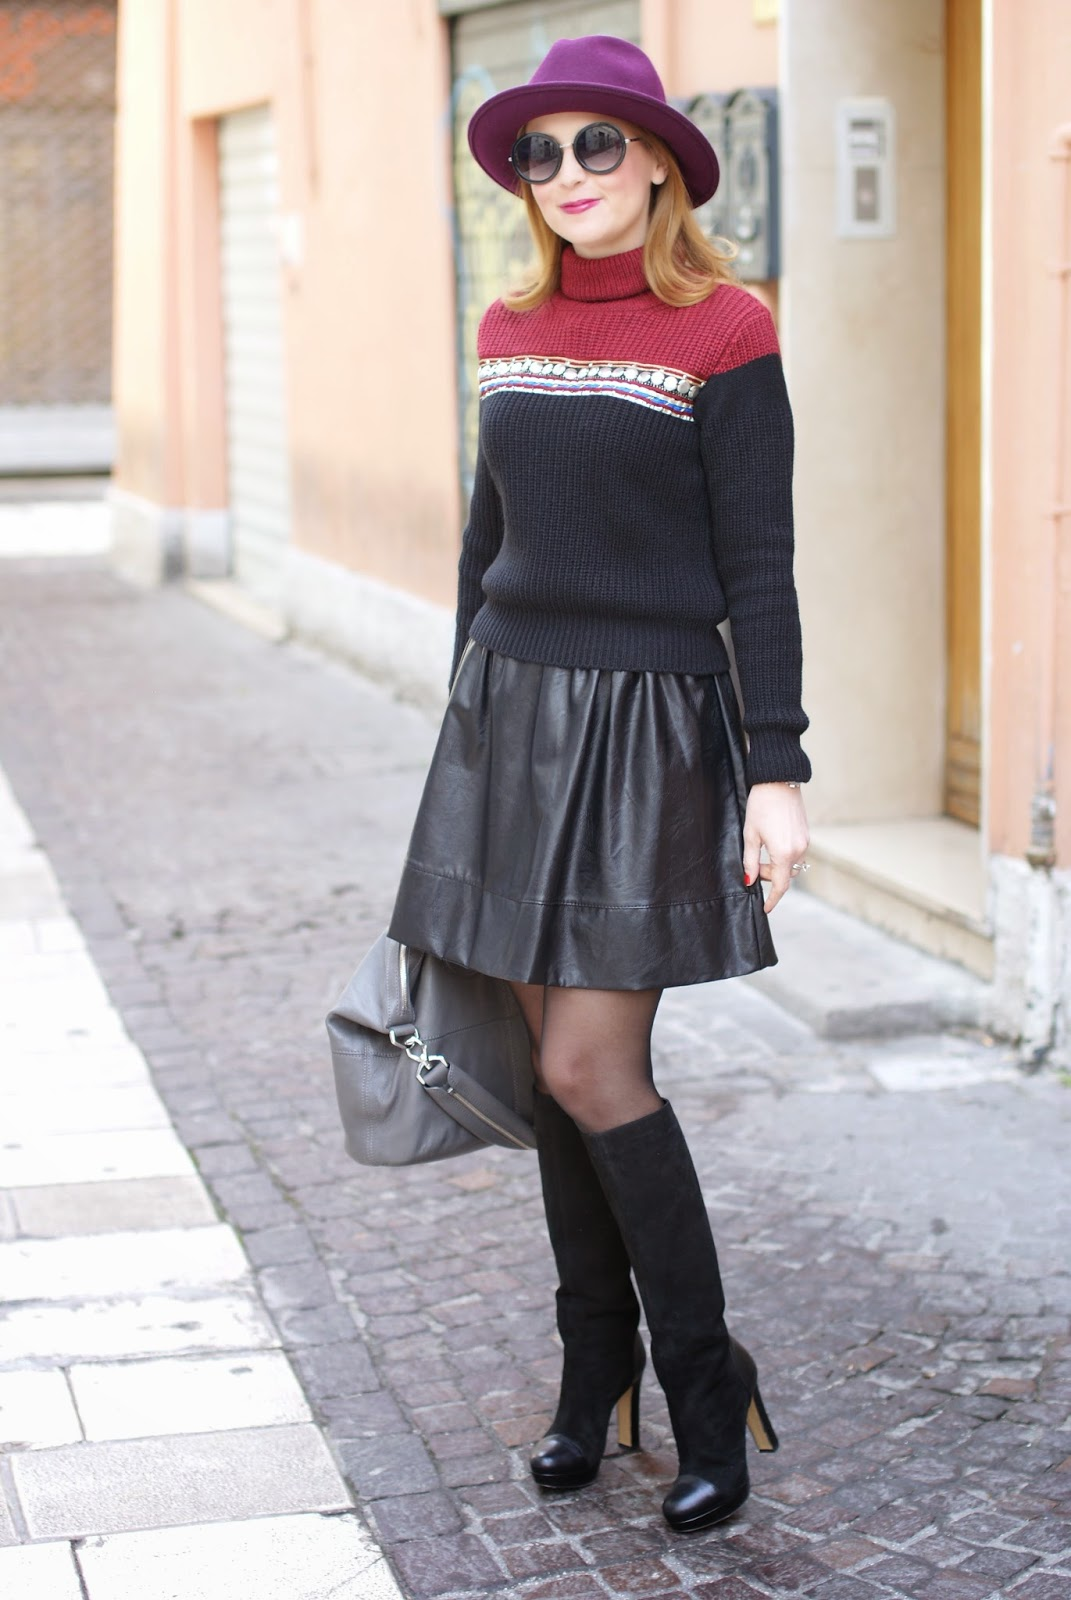 A cozy and warm turtleneck ribbed knit sweater 09af2c82816